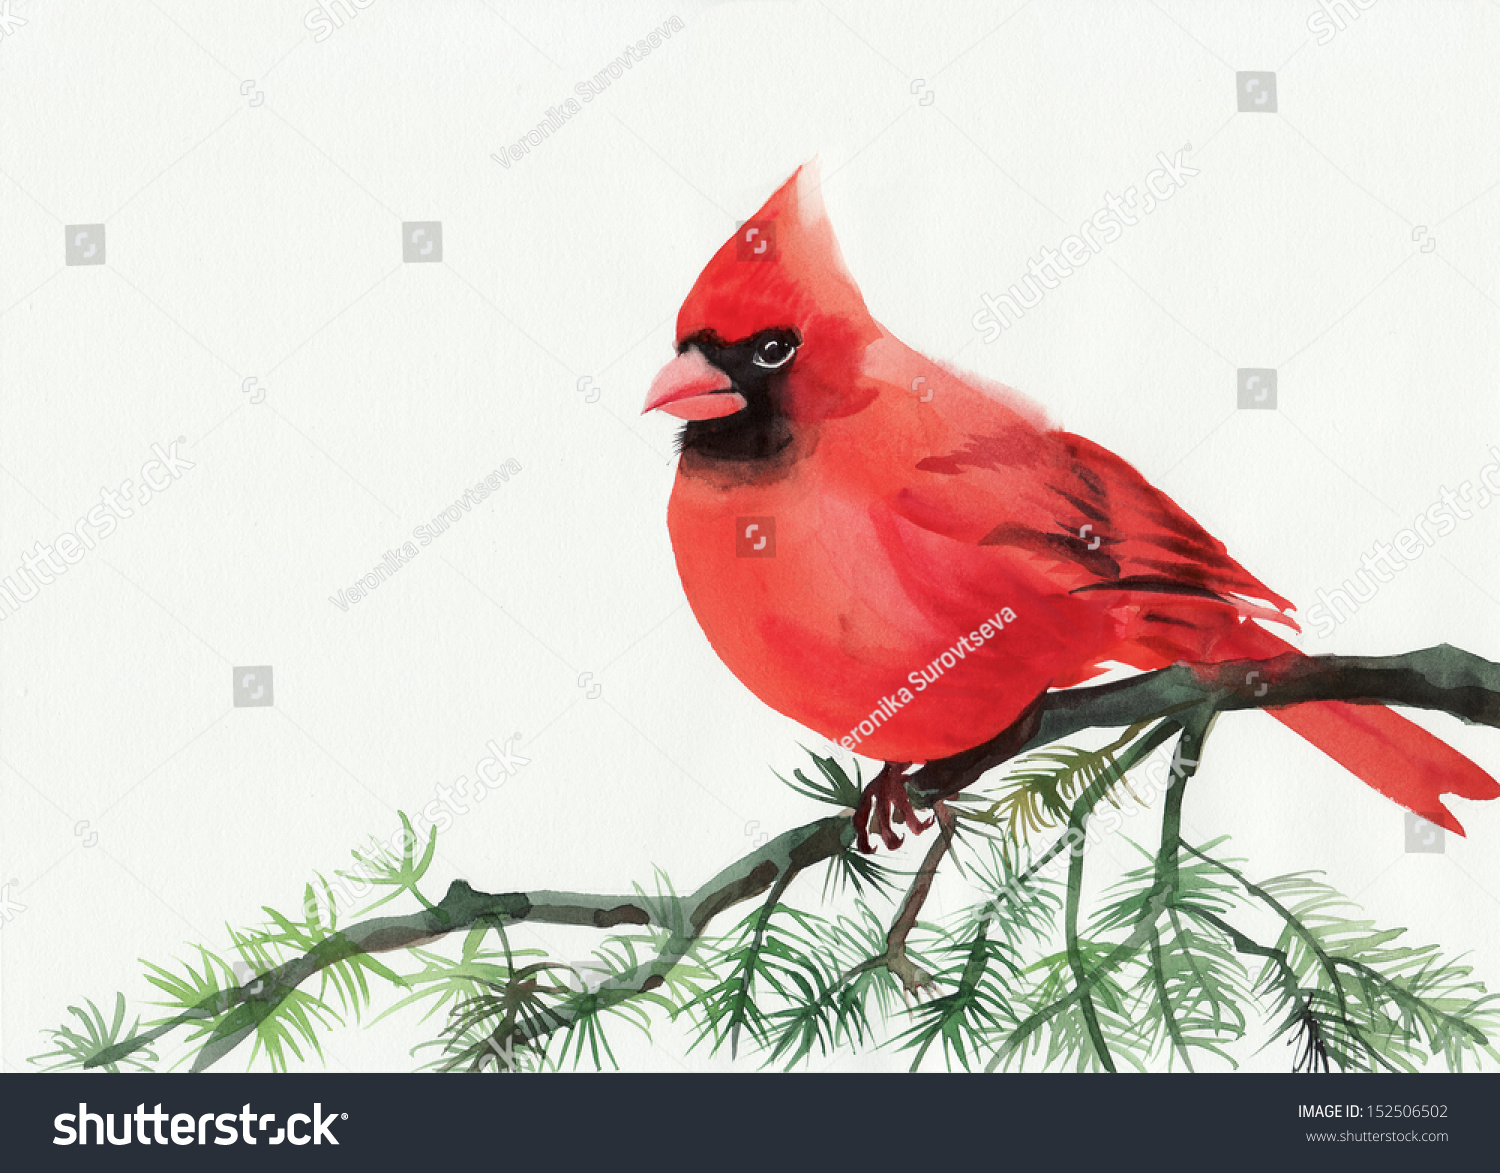 Watercolor Painting Of Cardinal Bird Sitting On A Branch Stock Photo ...